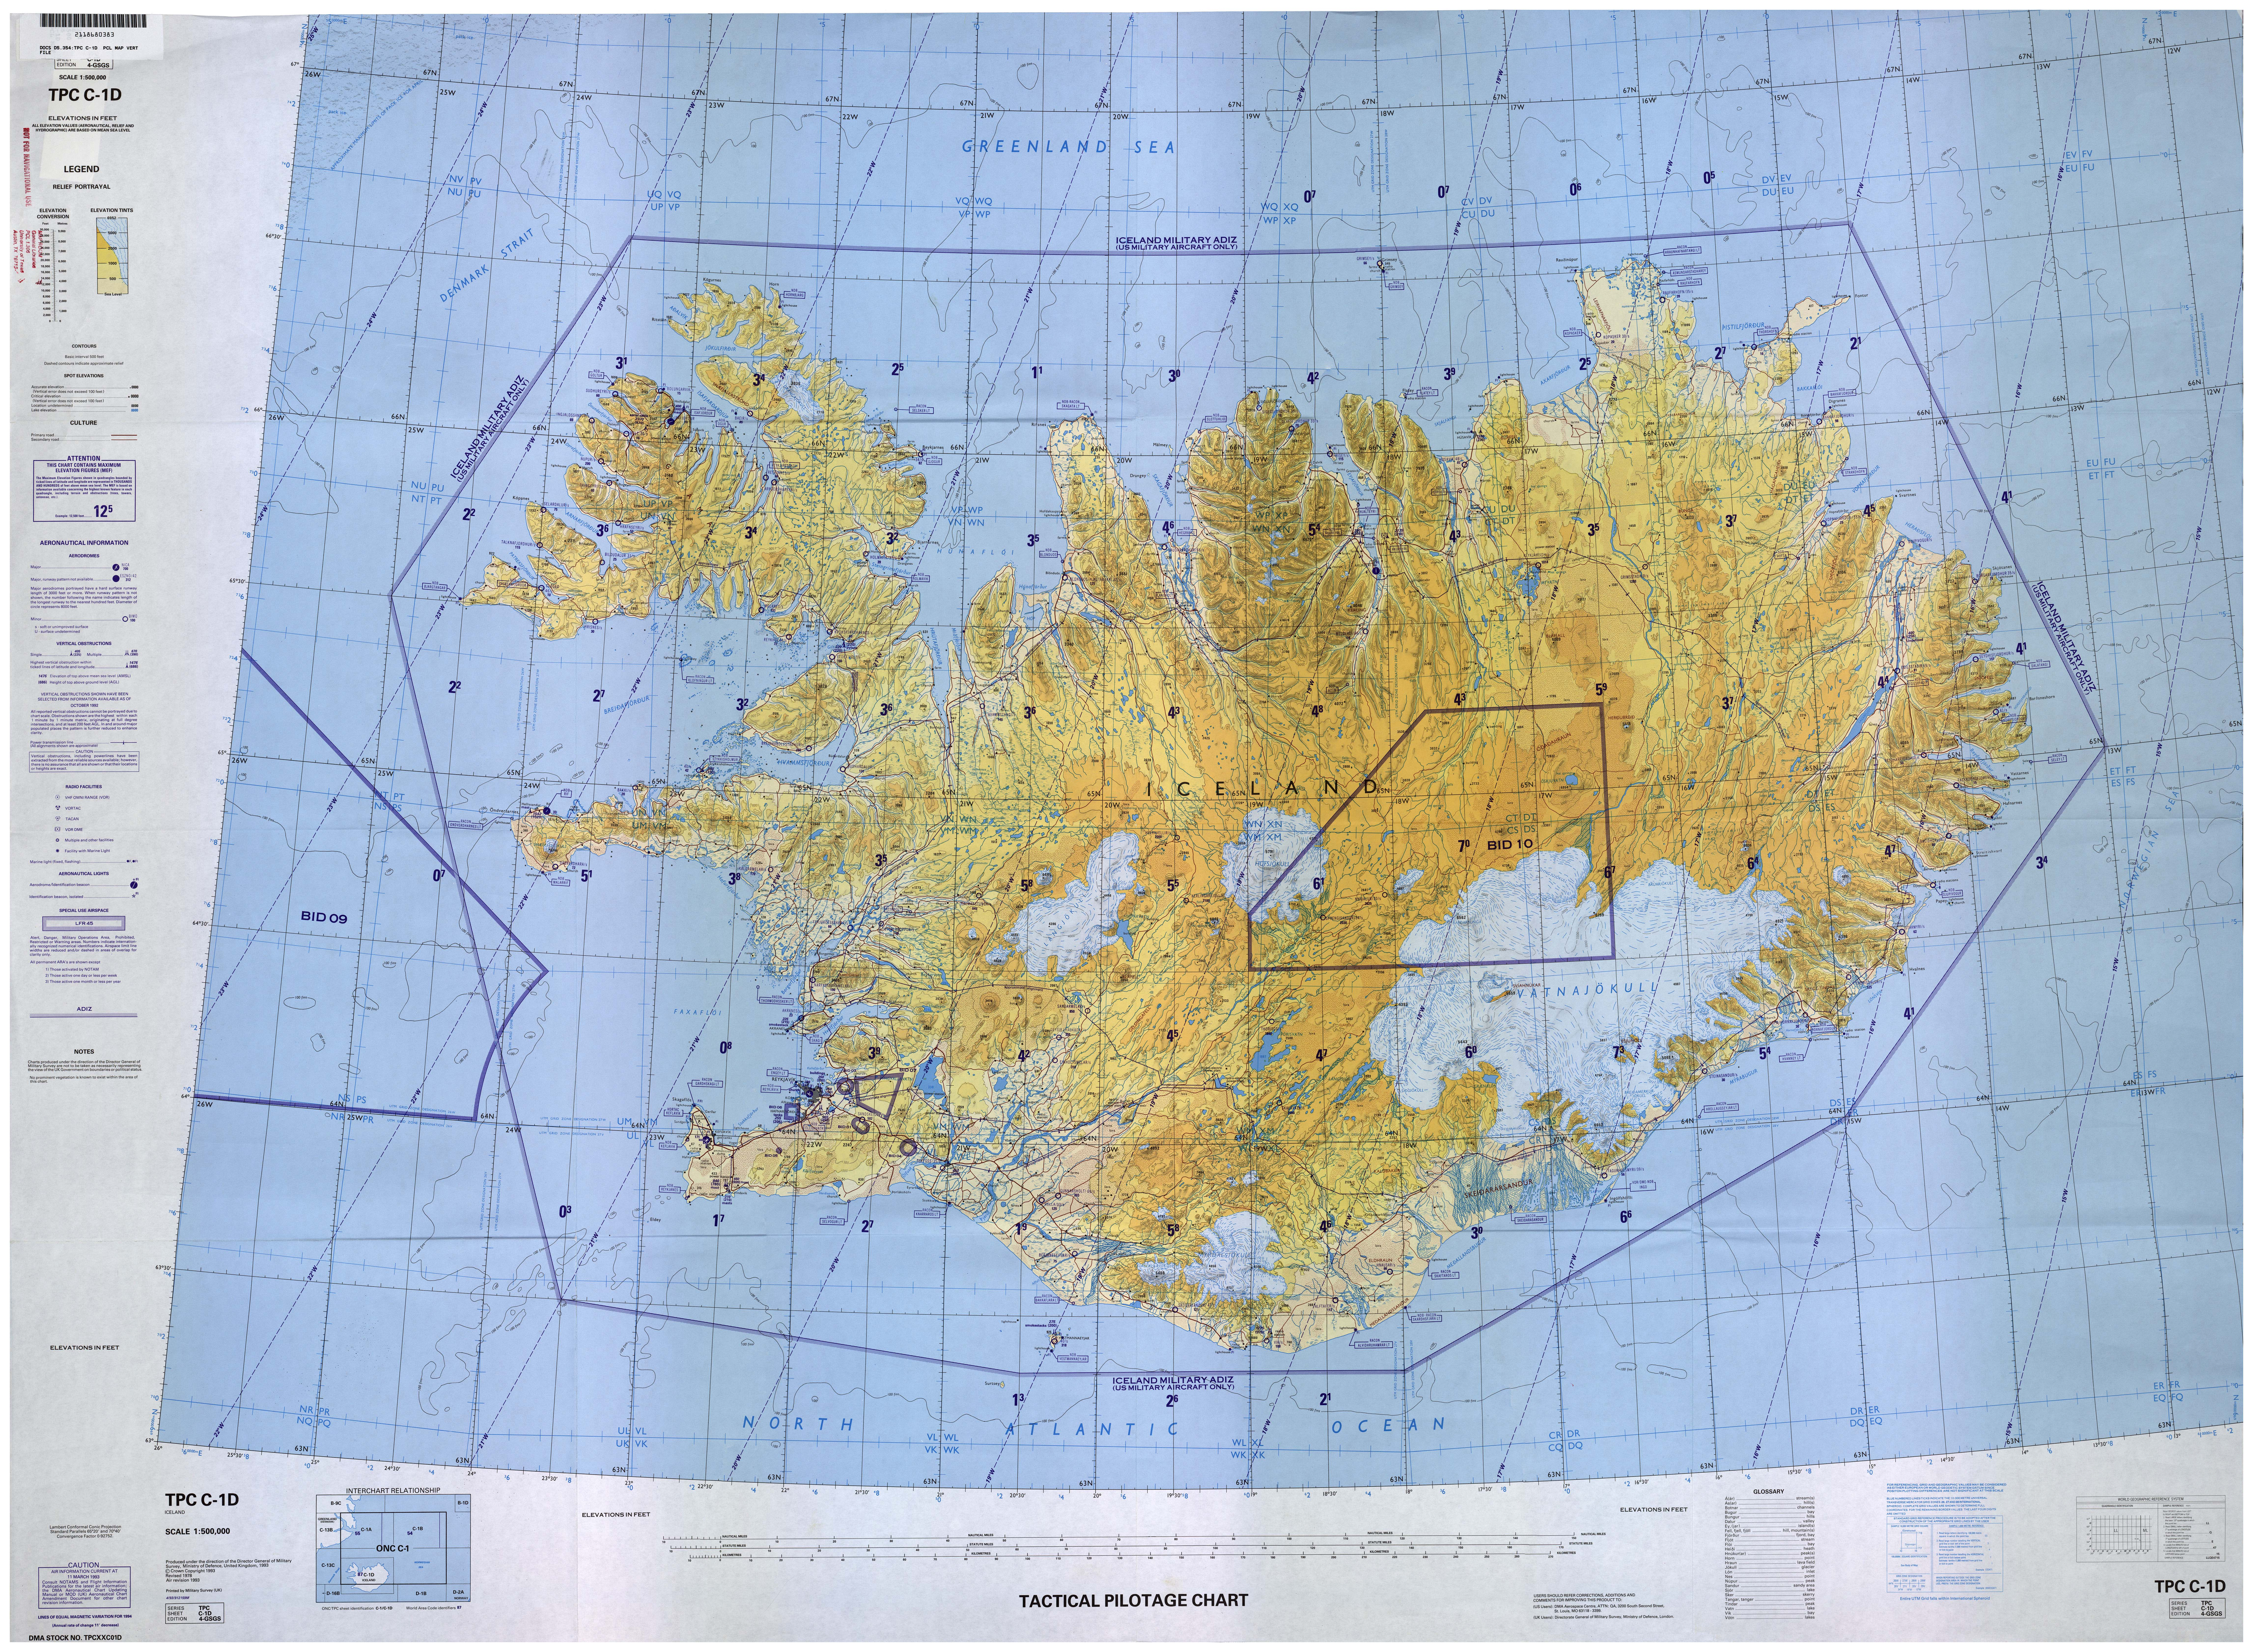 Topographic Map Of Iceland.Large Detailed Topographic Map Of Iceland Iceland Large Detailed